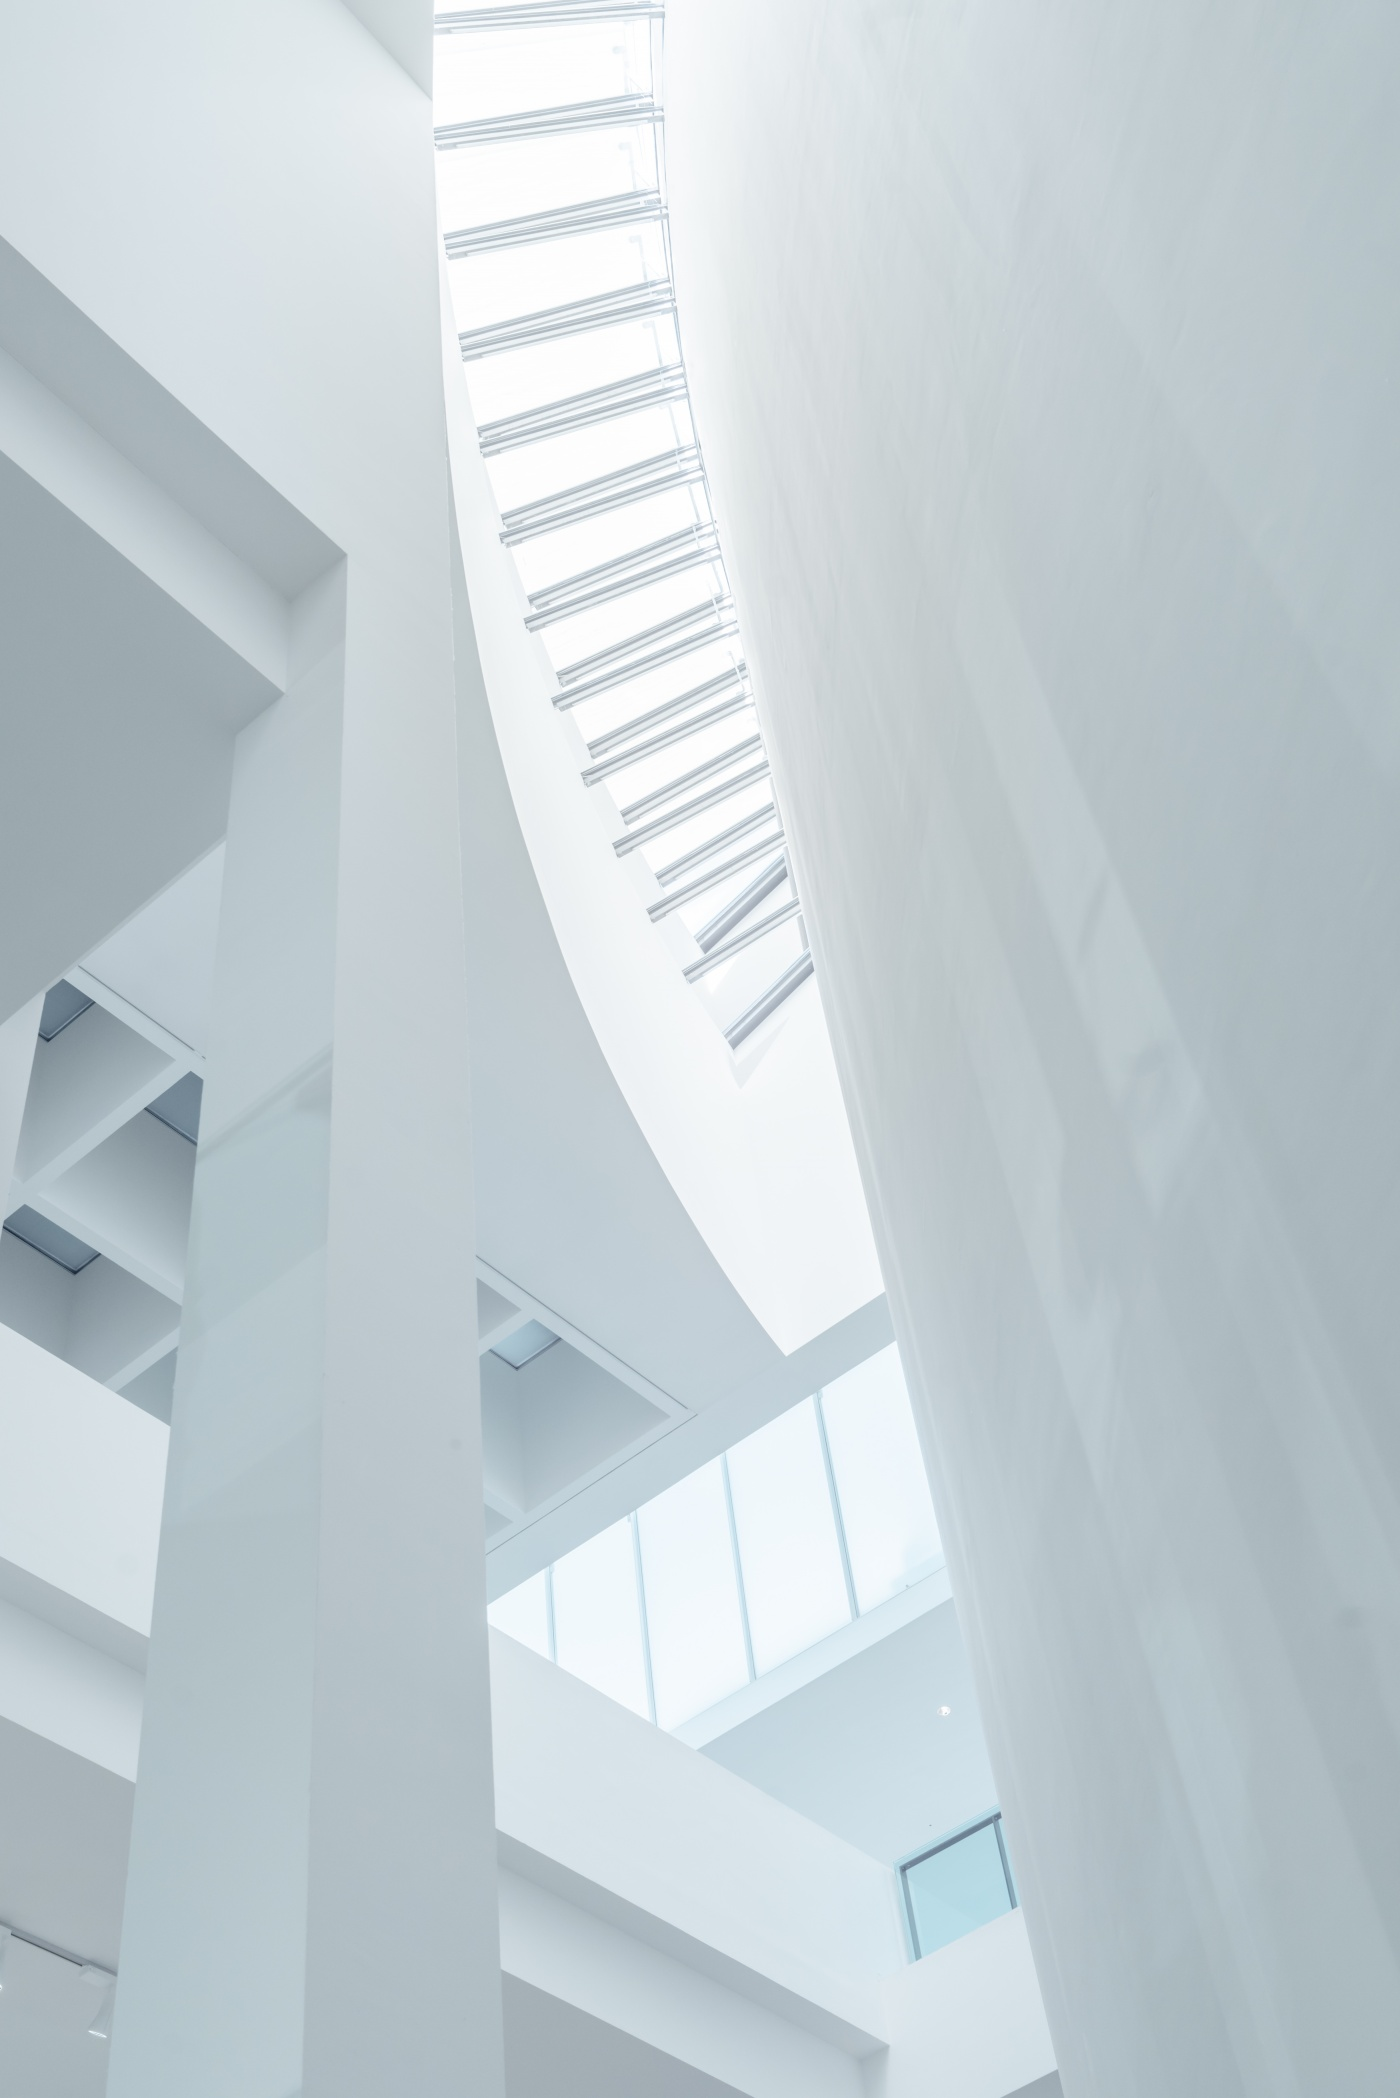 Absence of Colour: Pinakothek der Moderne in White-3 by FIELD.IO